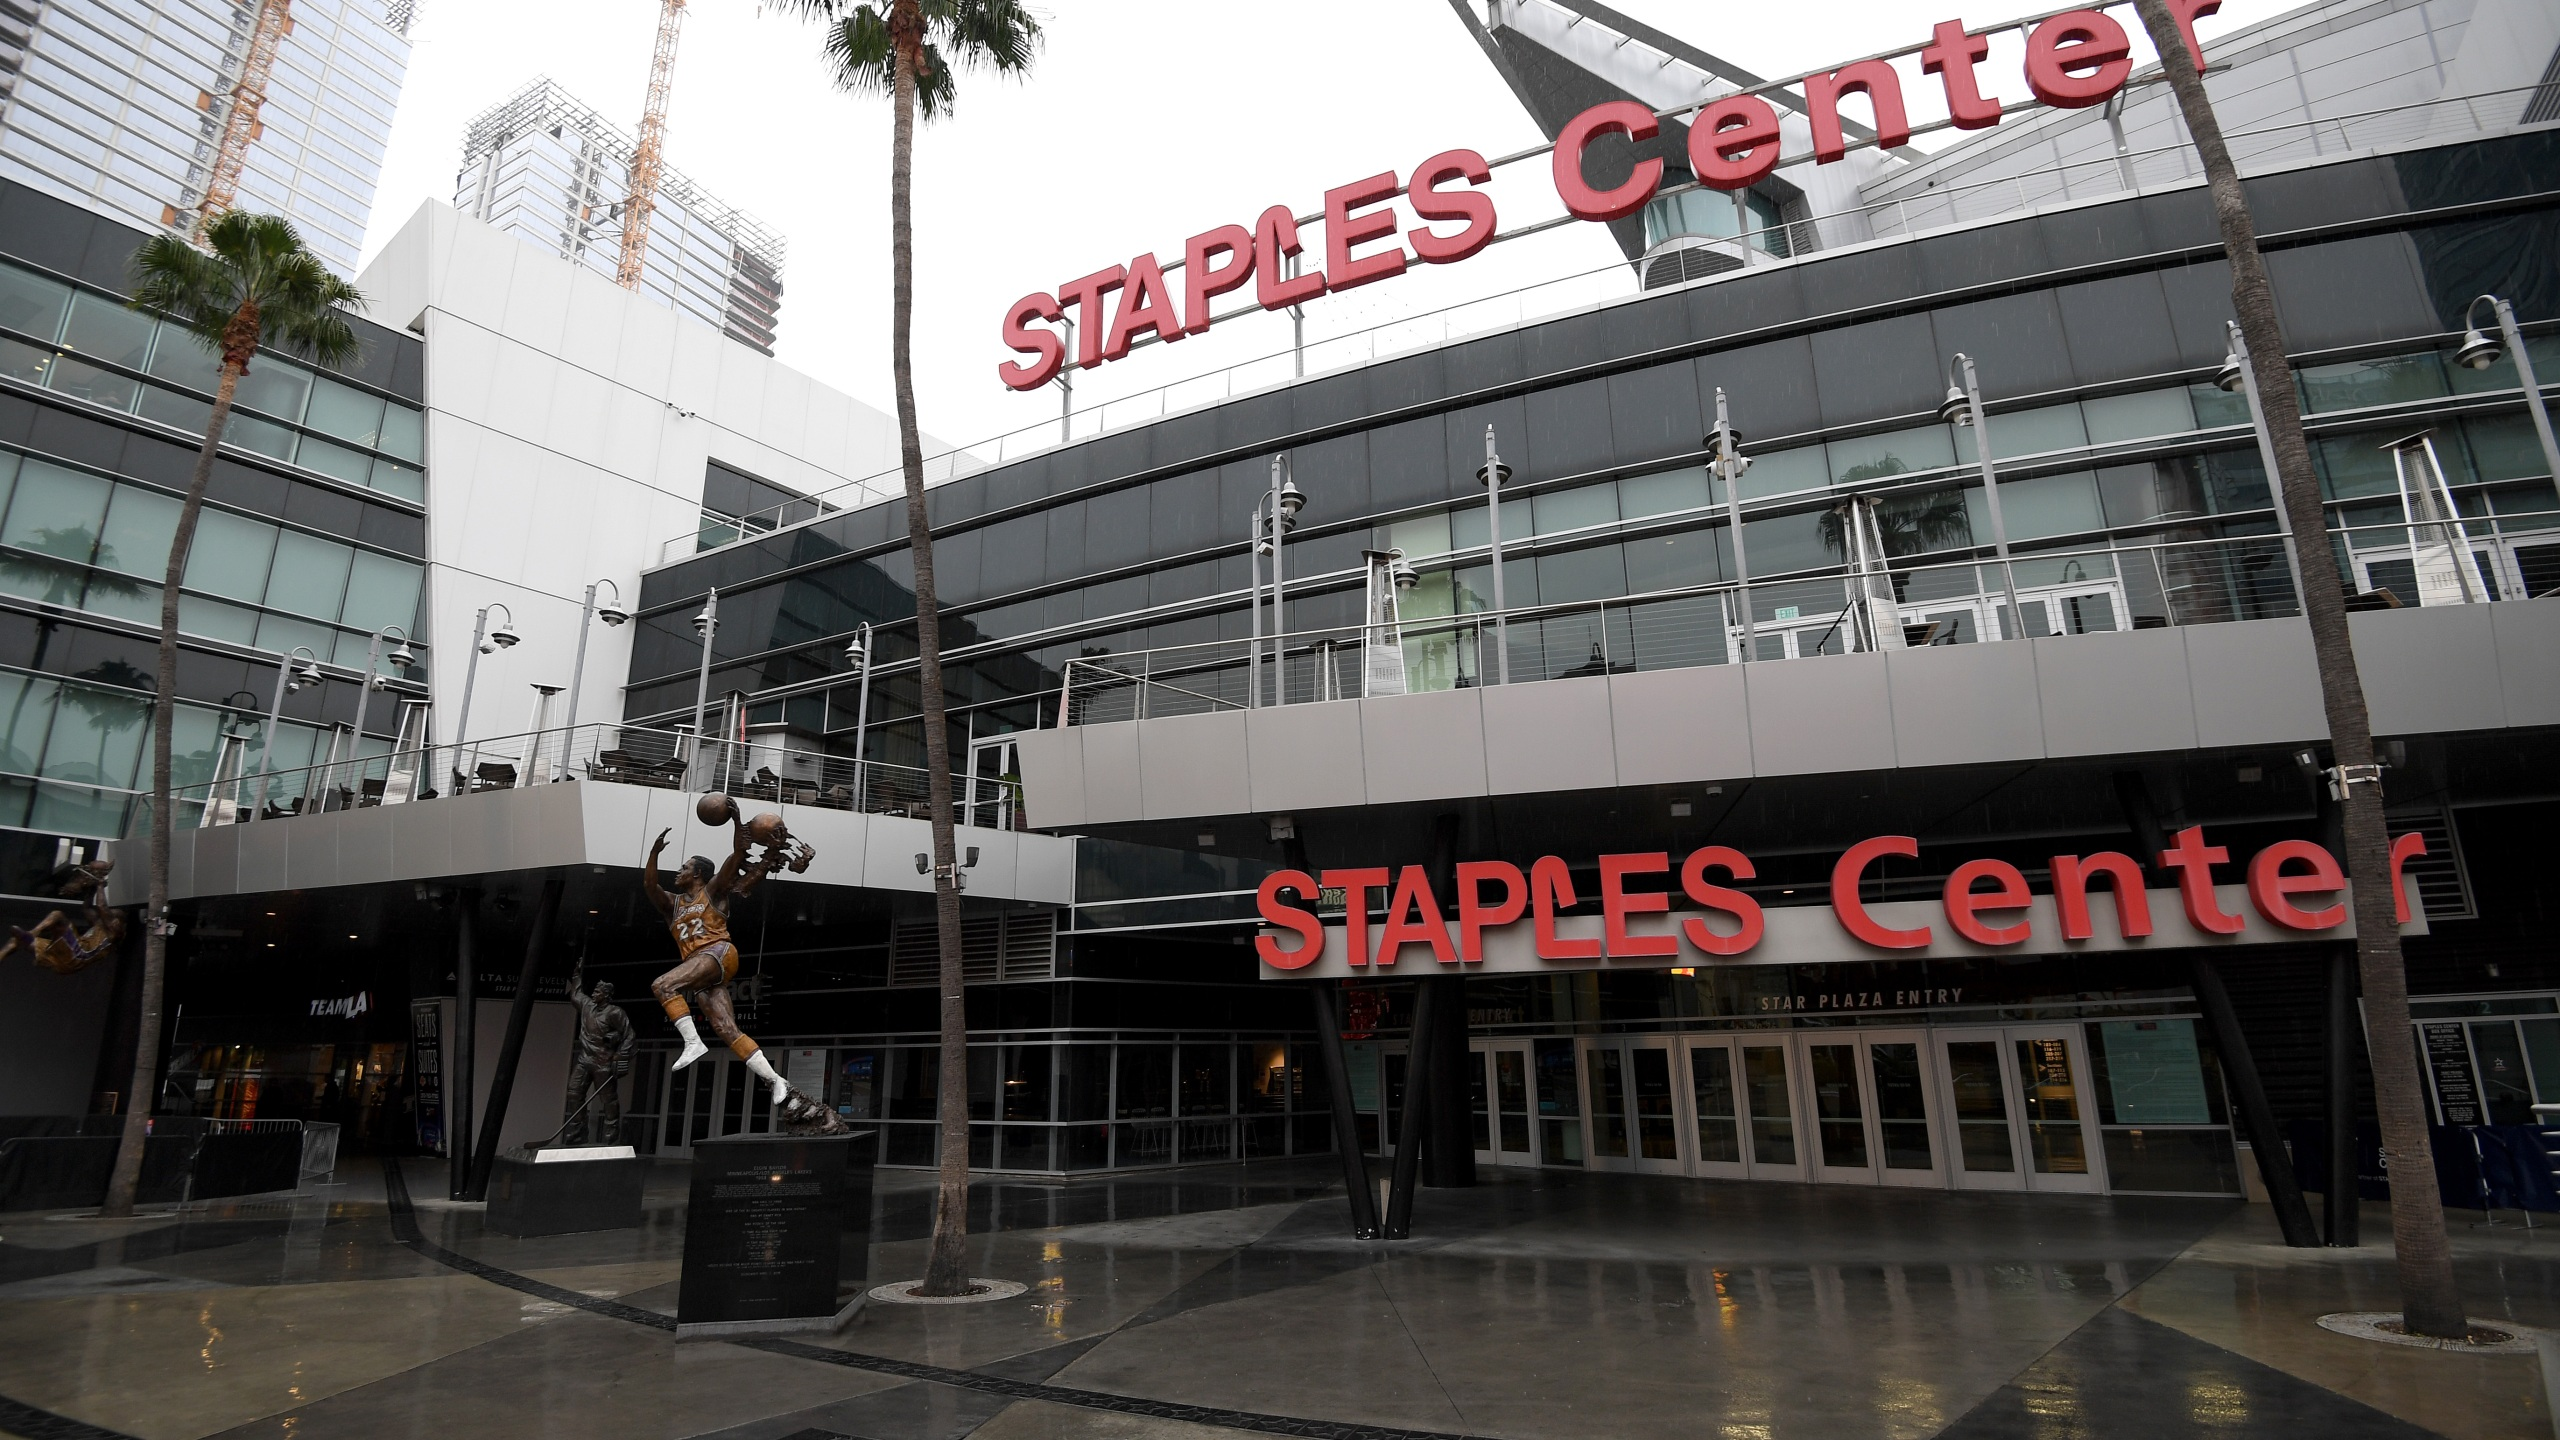 The scene was empty outside Staples Center on March 12, 2020 after both the NHL and NBA postponed their seasons due to coronavirus concerns. (Harry How/Getty Images)